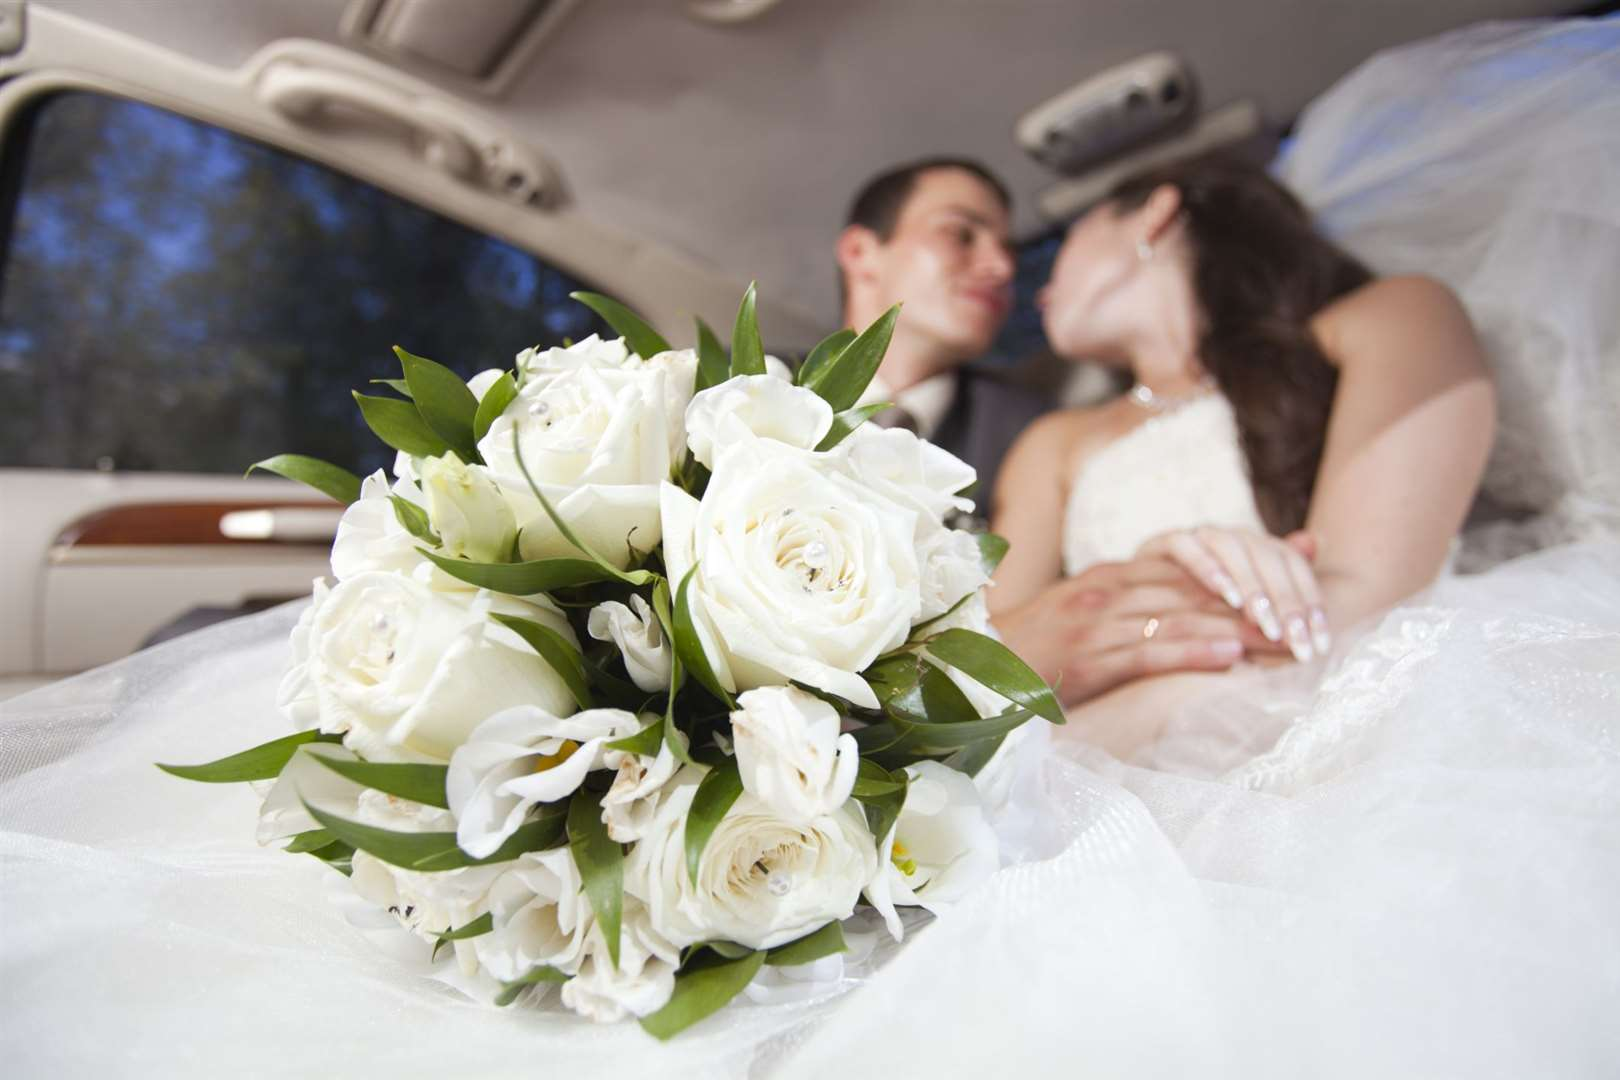 Just 15% of couples get married in a religious ceremony in Medway